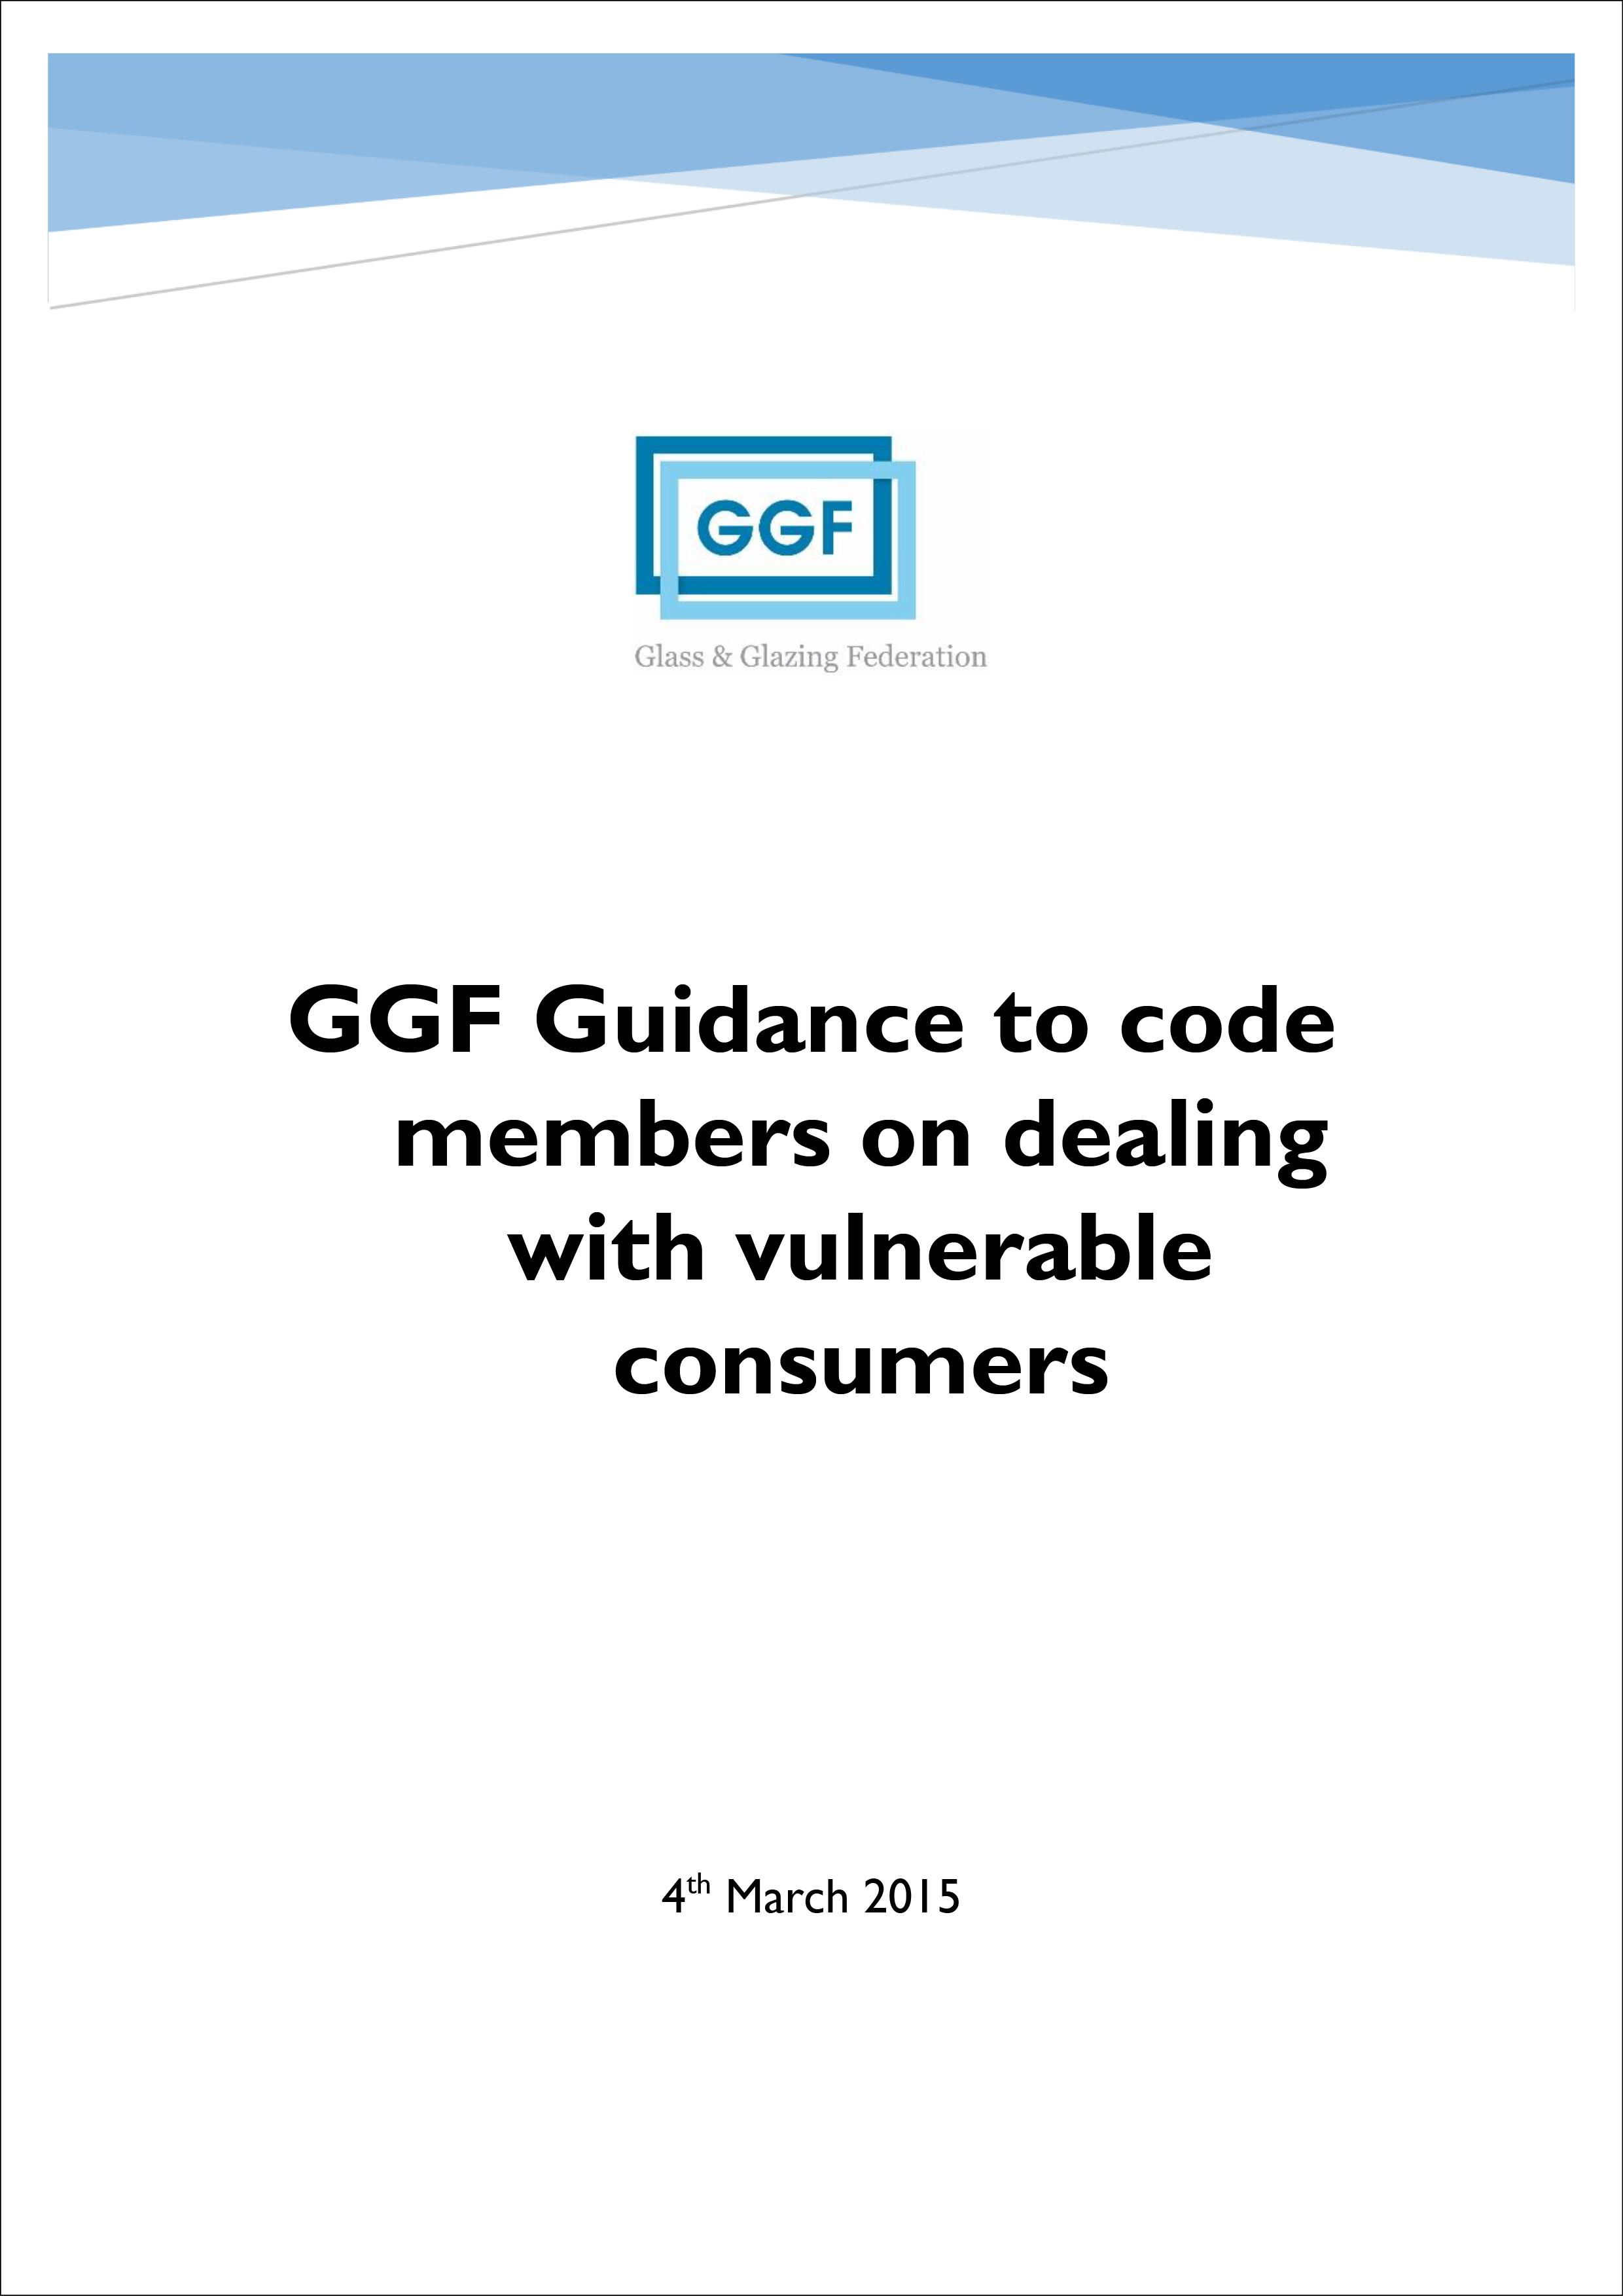 GGF Guidance to Code Members on Dealing with Vulnerable Consumers